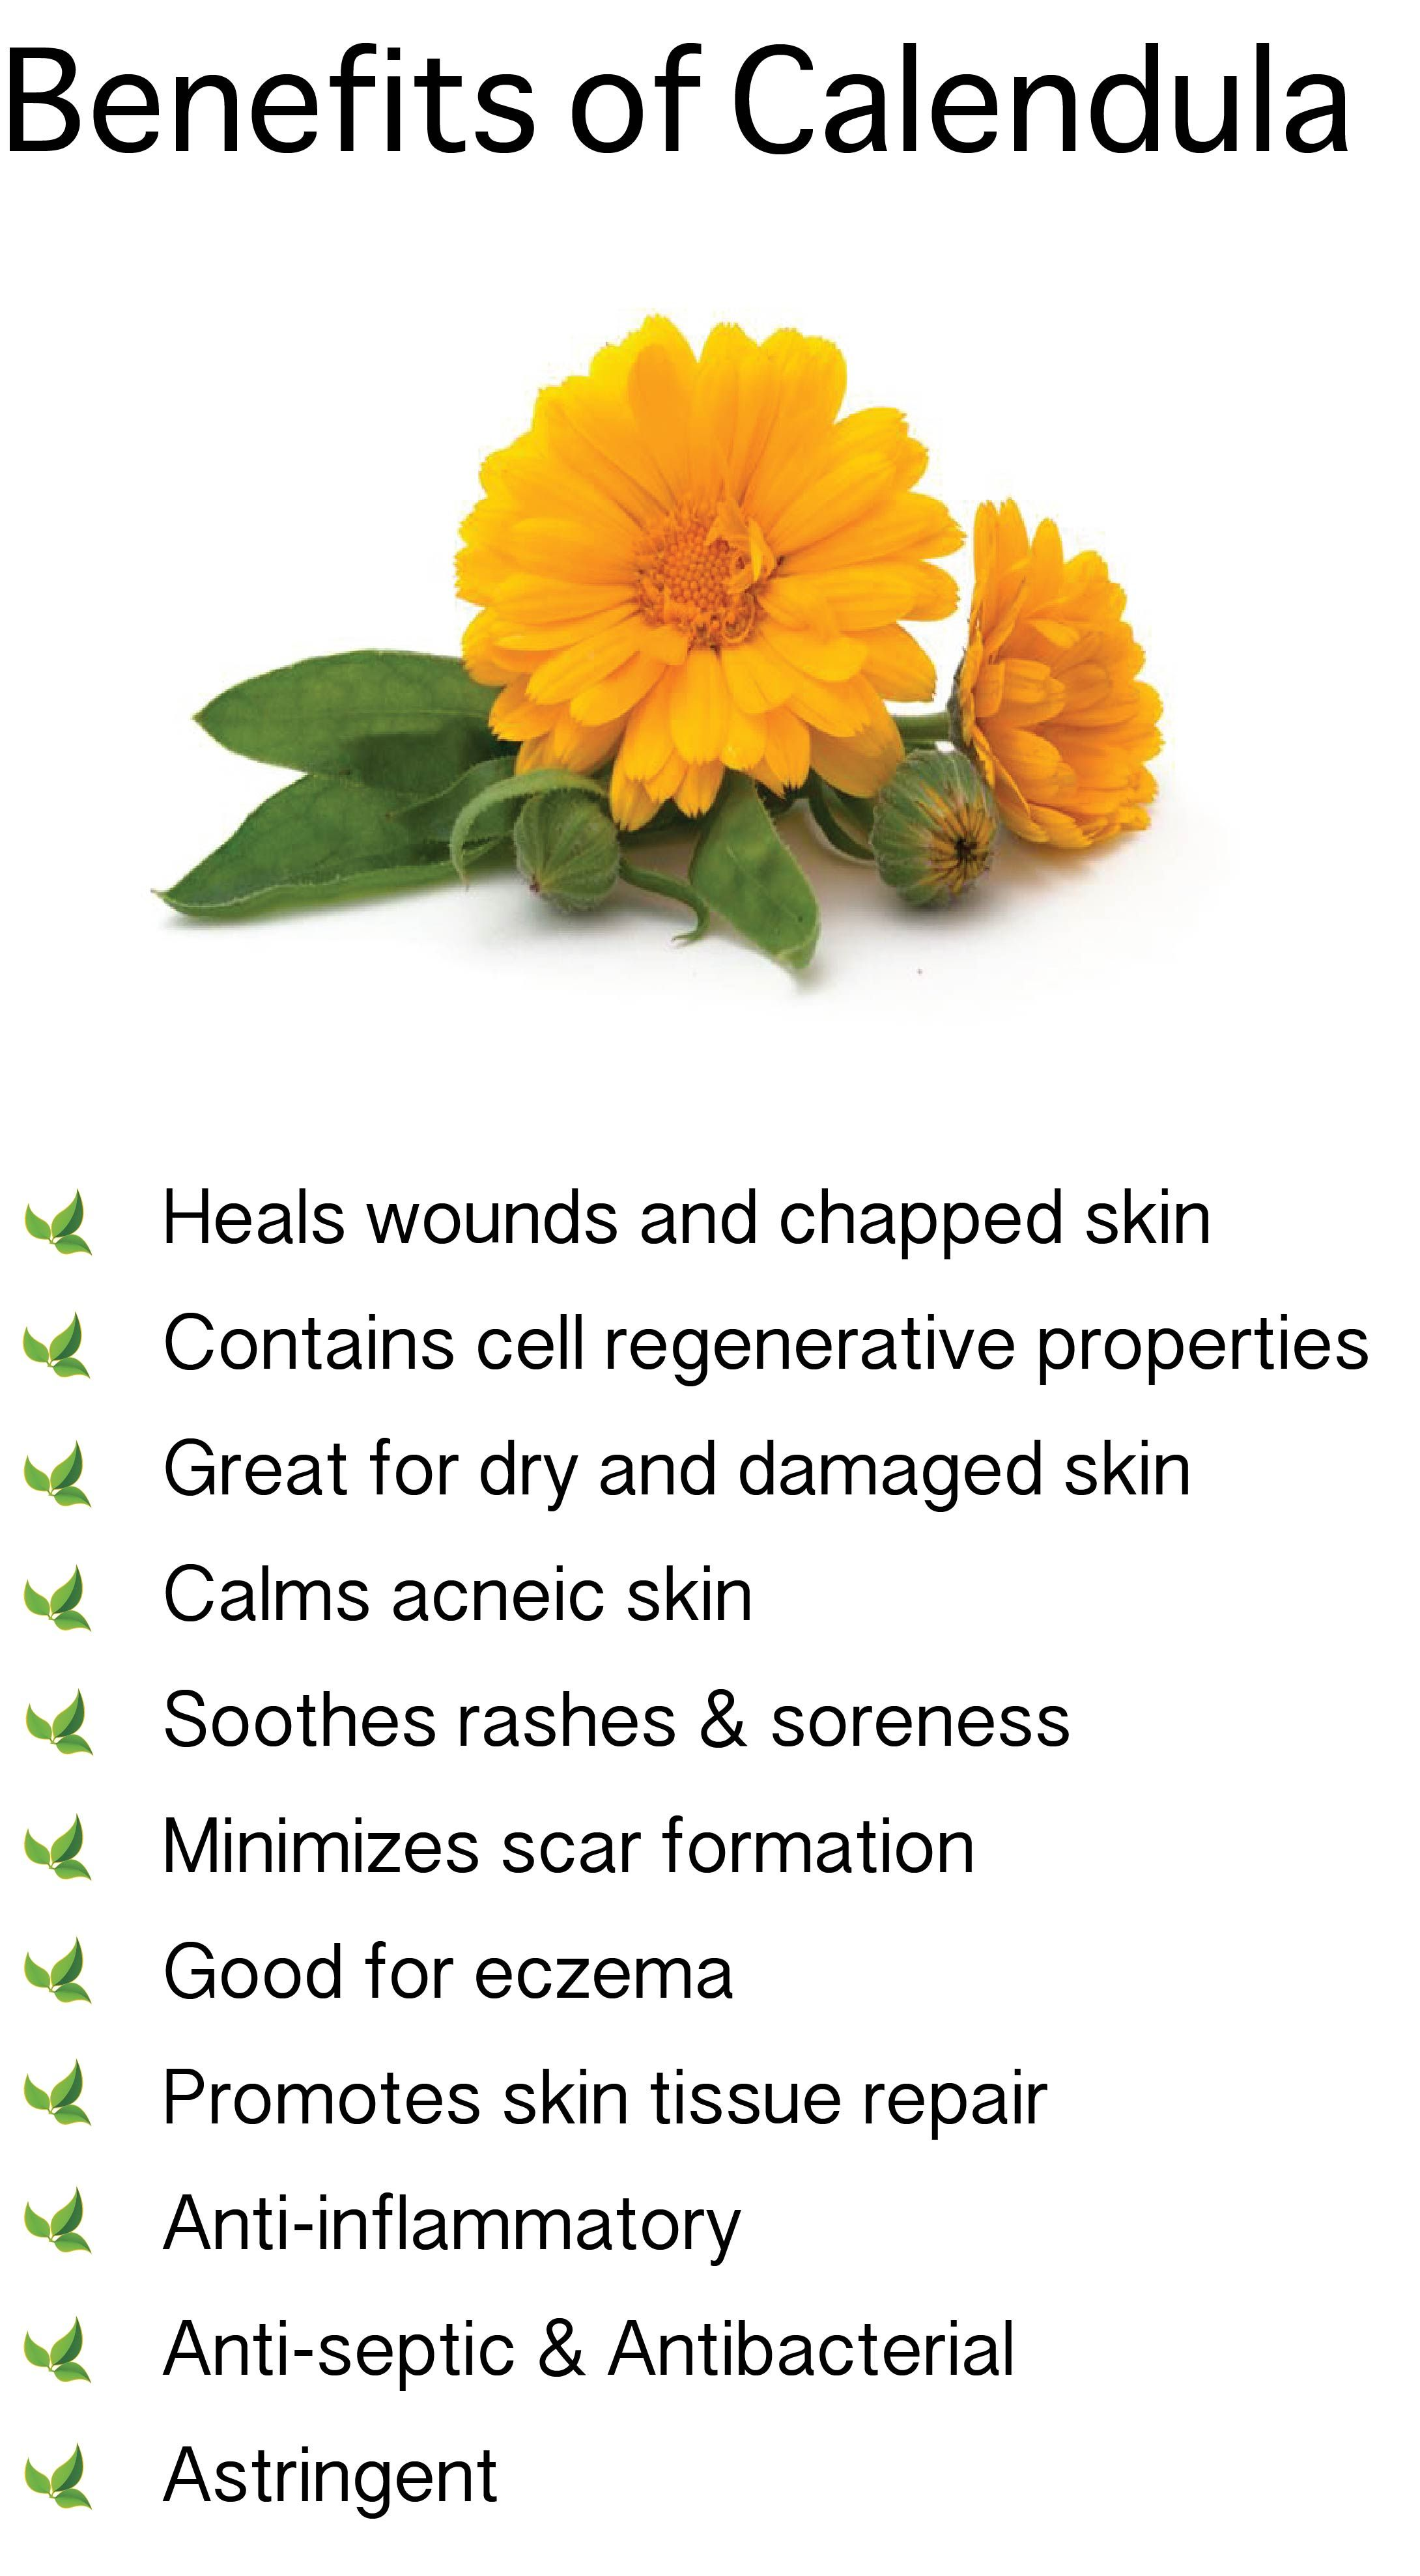 Calendula - the benefits and harm, application and popular recipes 3